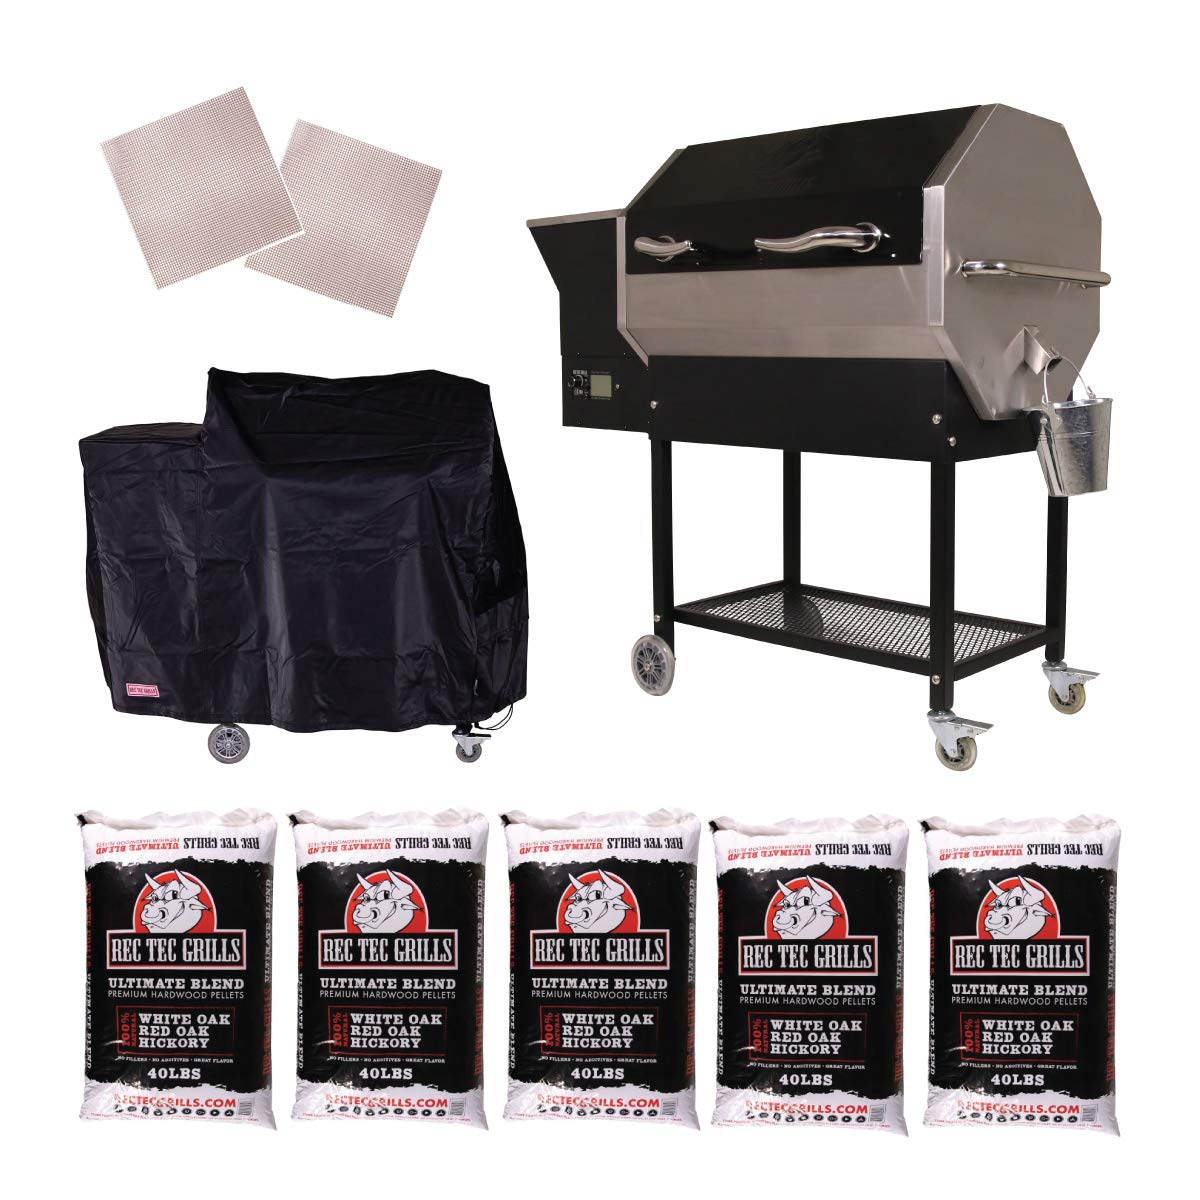 REC TEC Grills RT-590 Bundle WiFi Enabled Portable Wood Pellet Grill Built in Meat Probes Stainless Steel 30lb Hopper 4 Year Warranty Hotflash Ceramic Ignition System